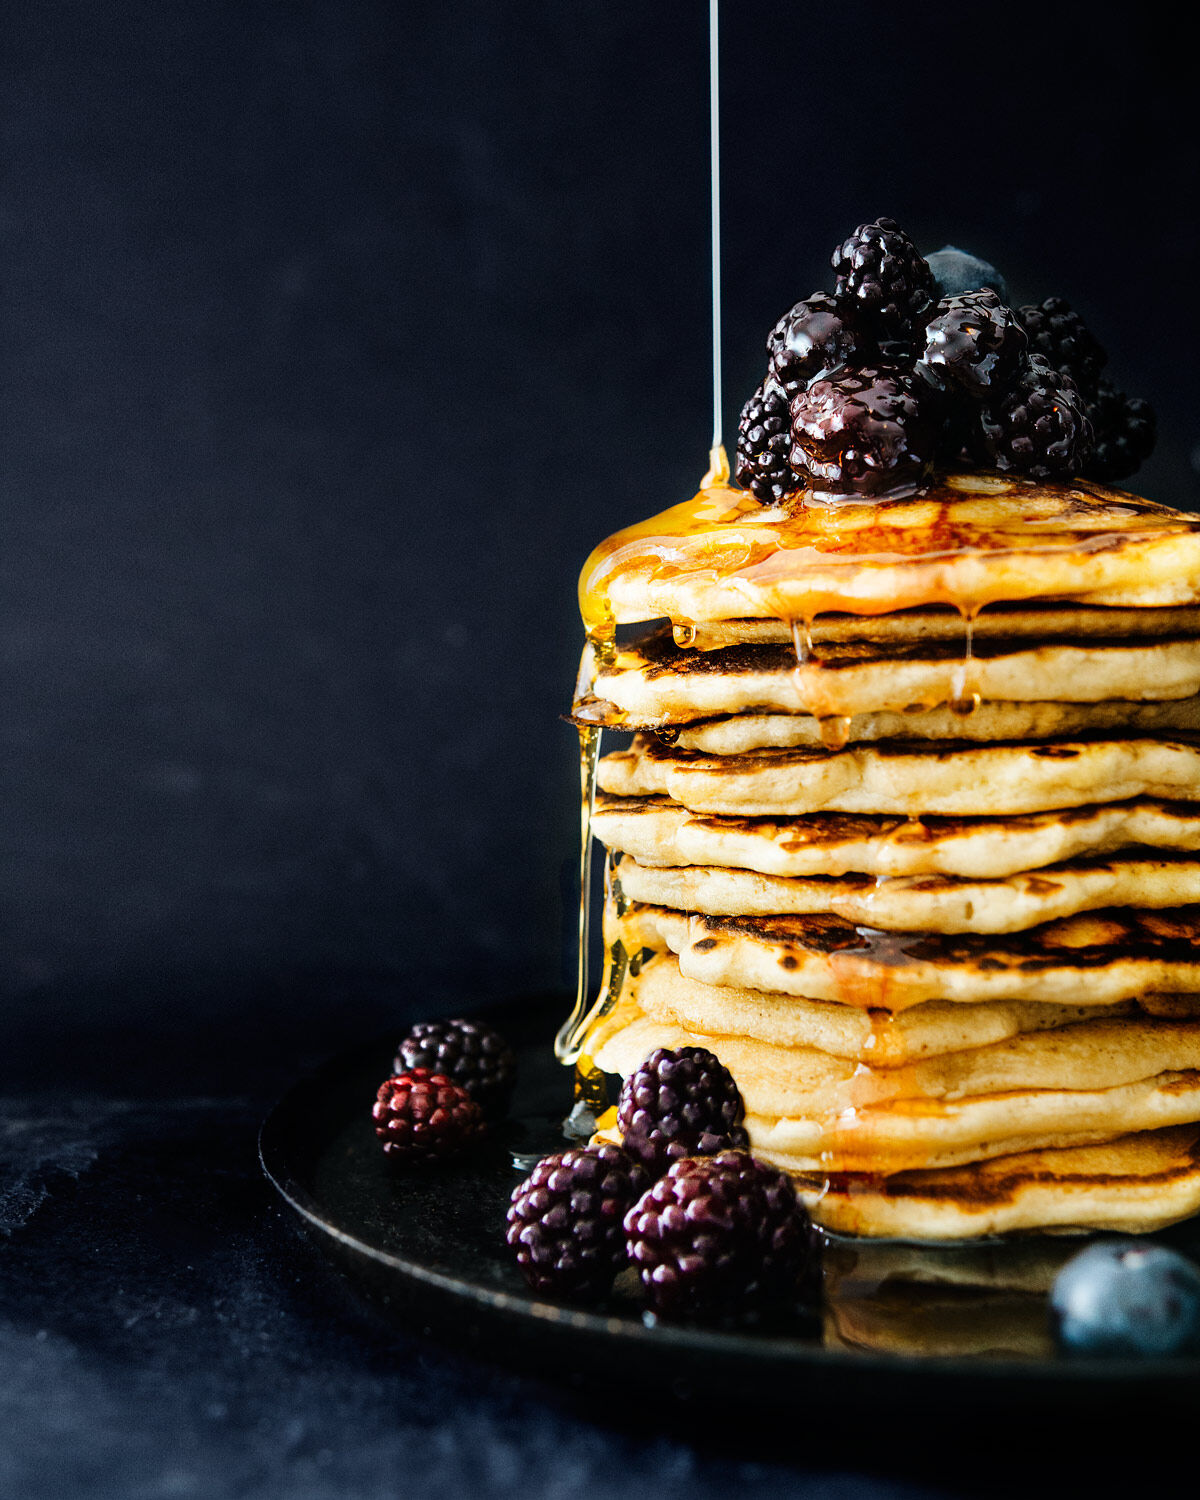 Pancakes with blackberries and honey with Fast Sverige by Petter Bäcklund